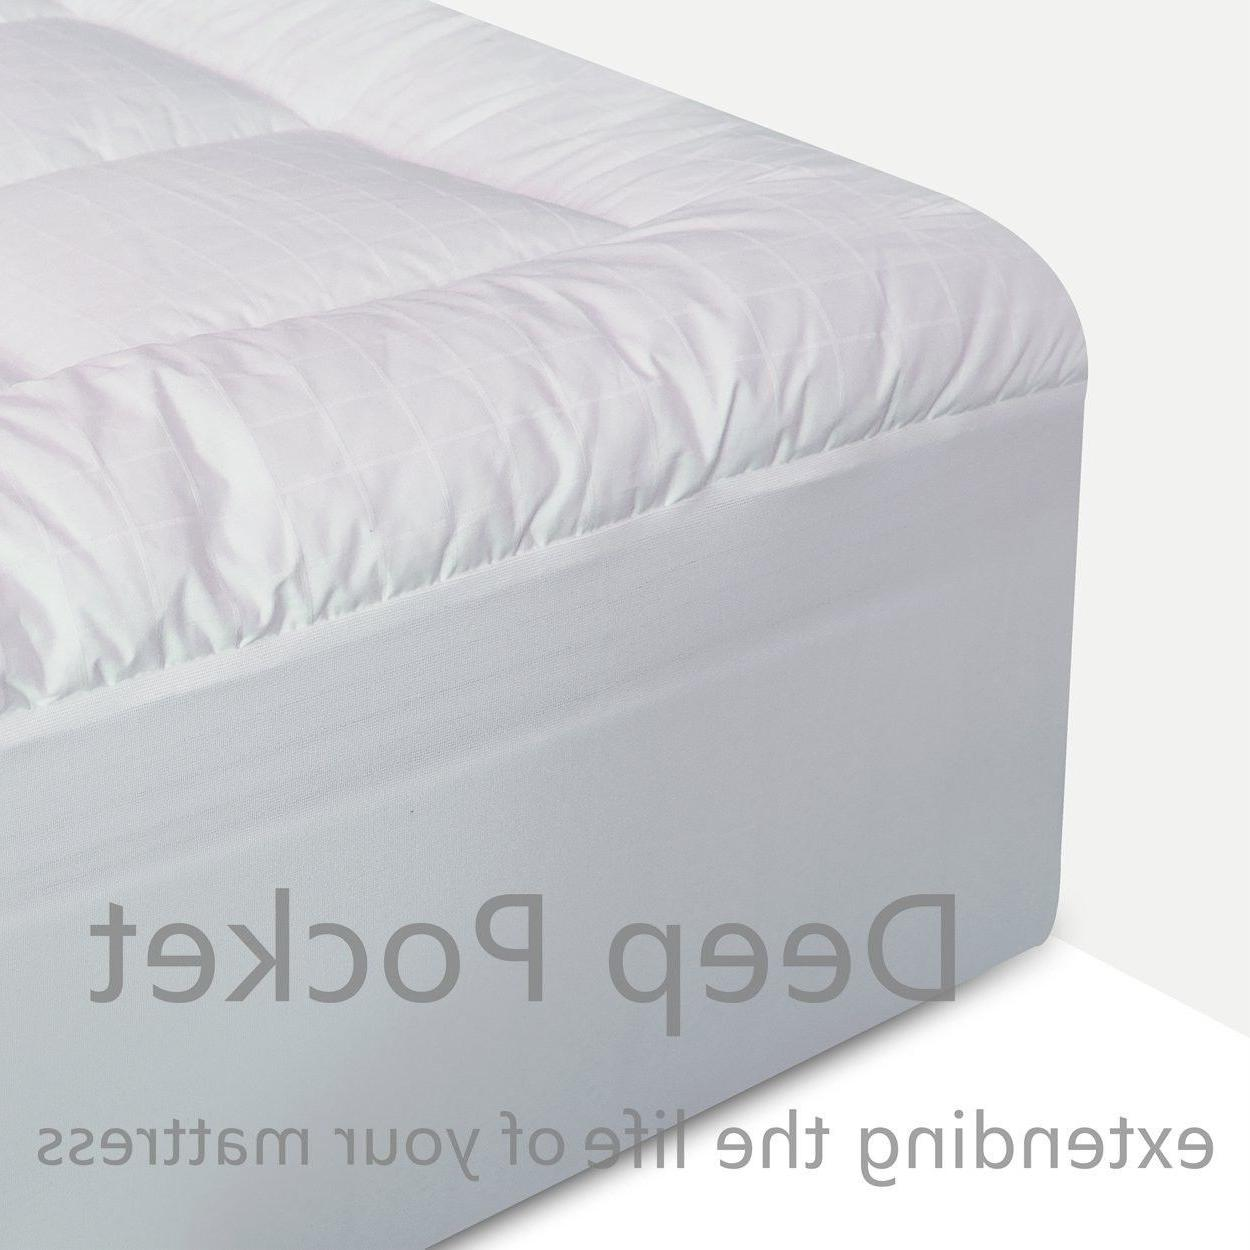 Mattress King Cotton Down Alternative Mattress